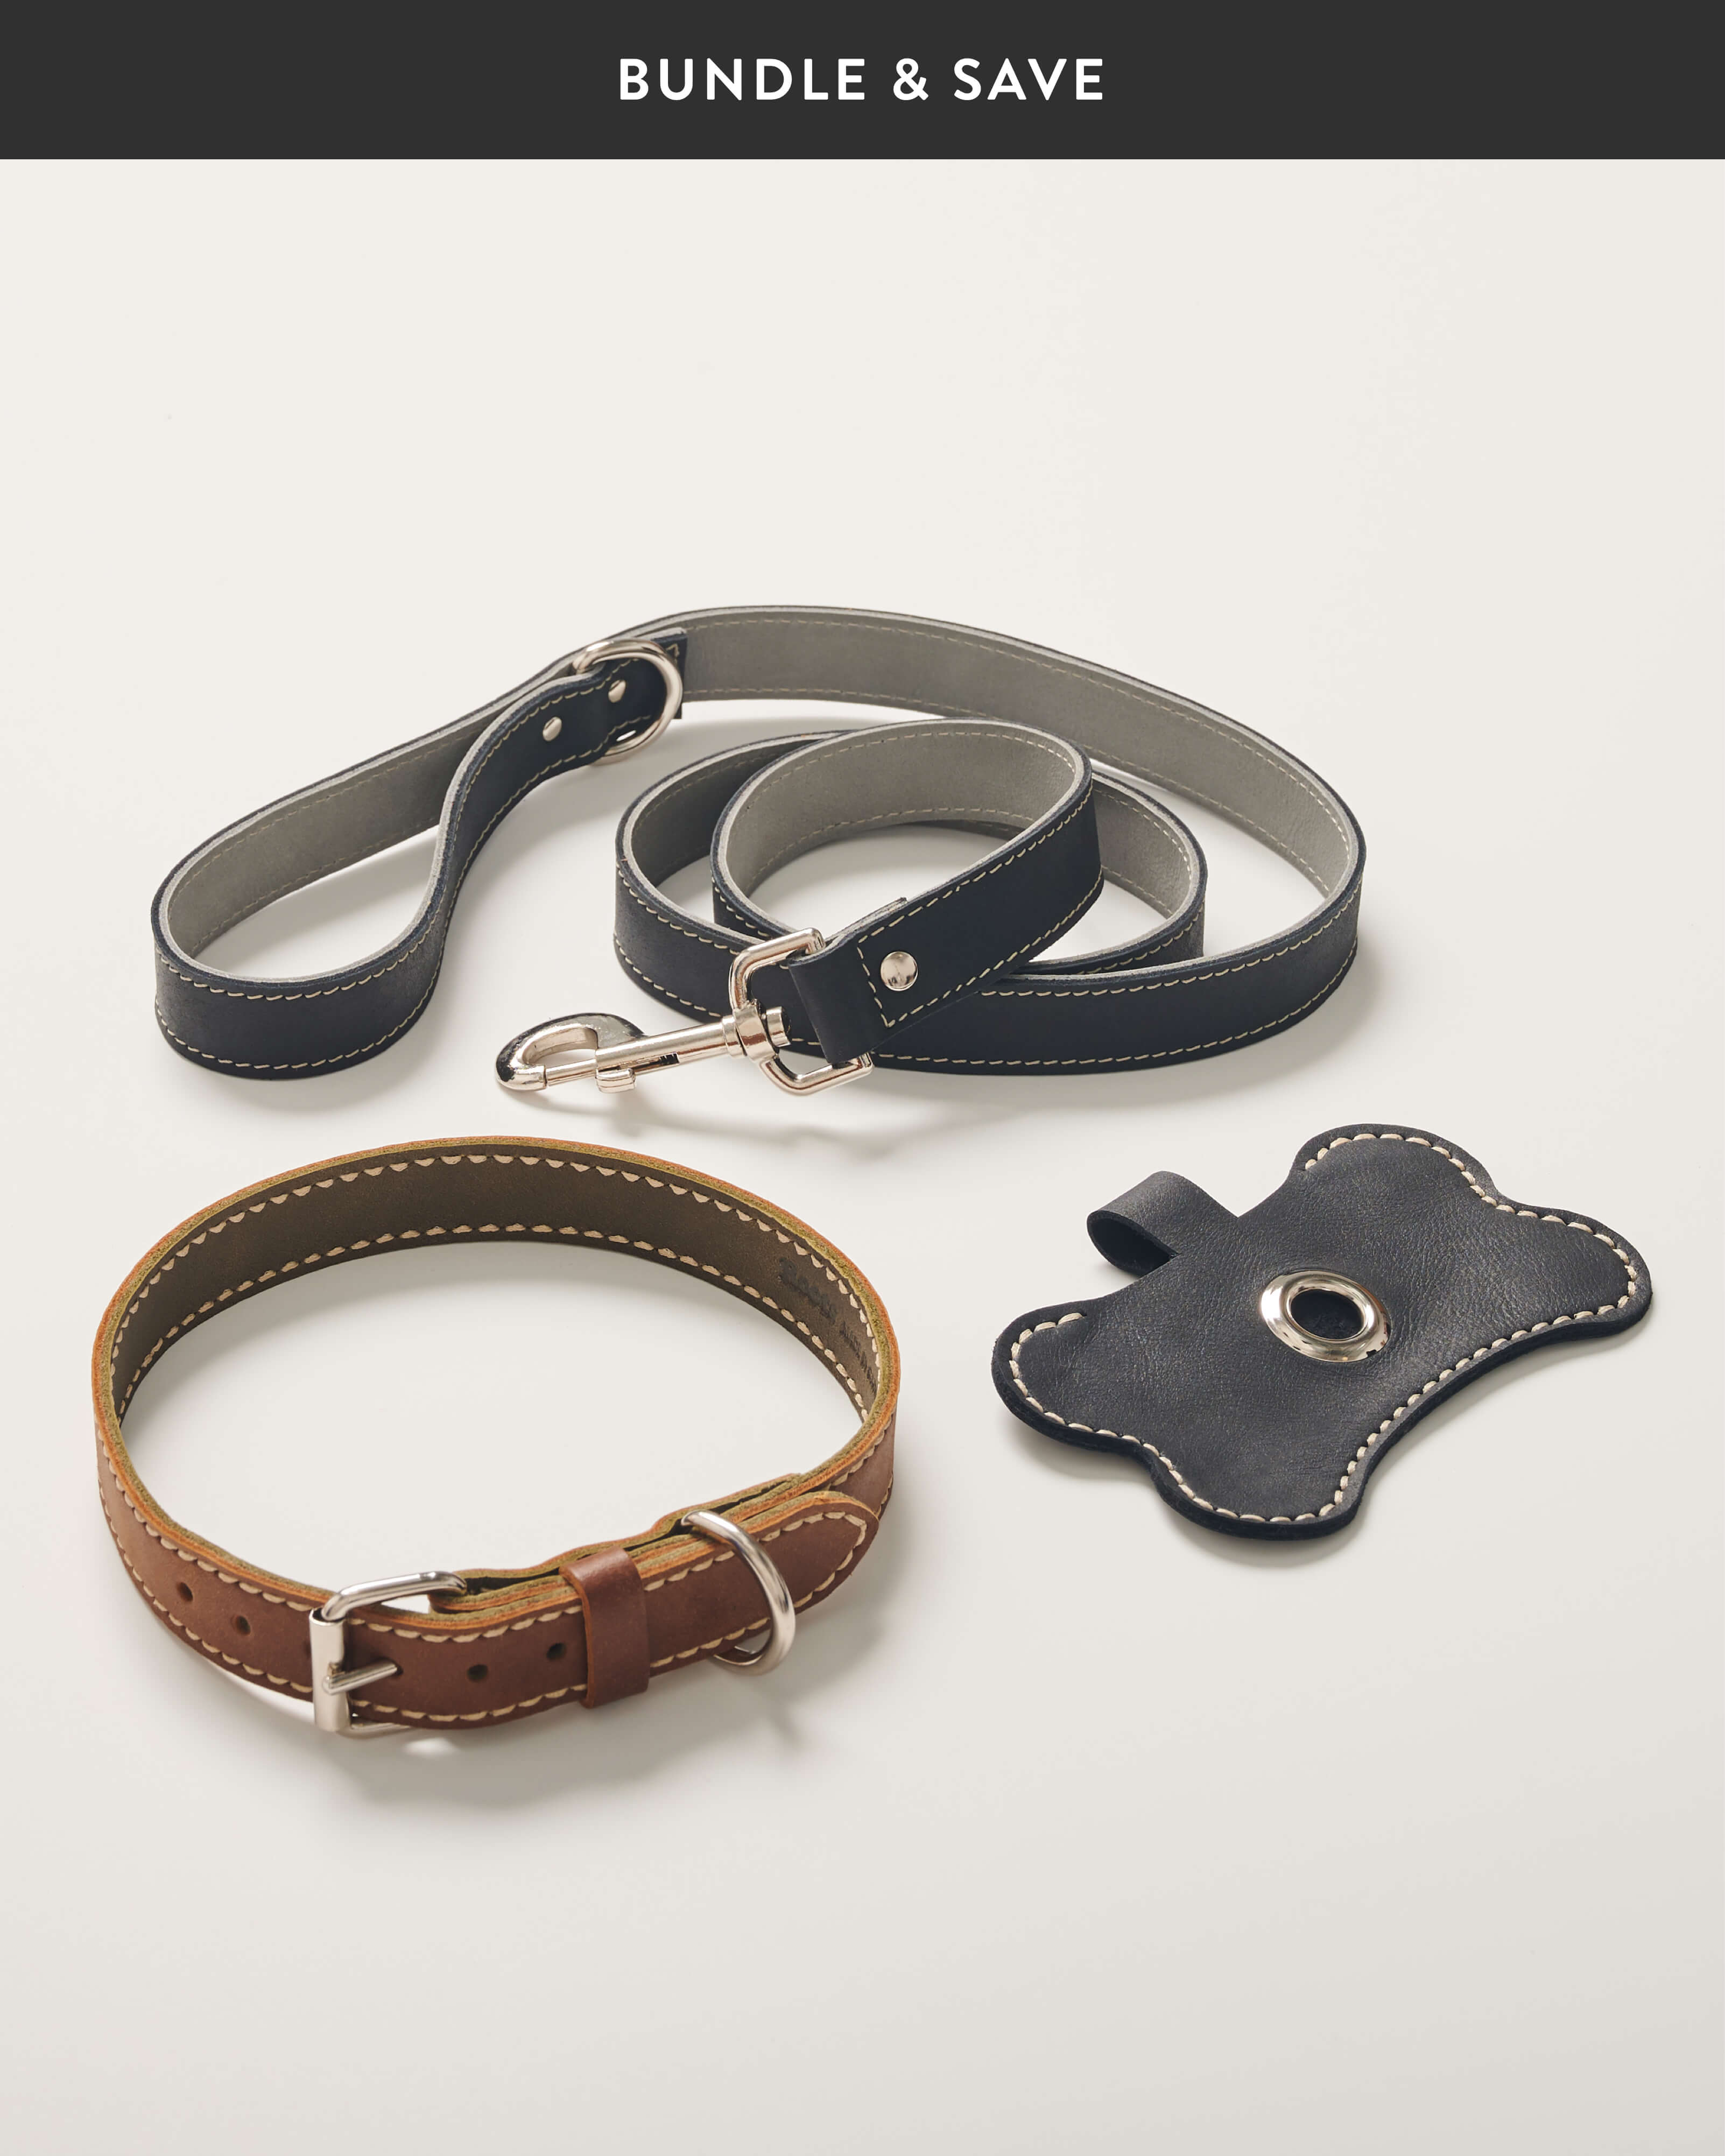 Roots-New For This Month Bundles-Shop The Look: Dog Accessories Bundle -4